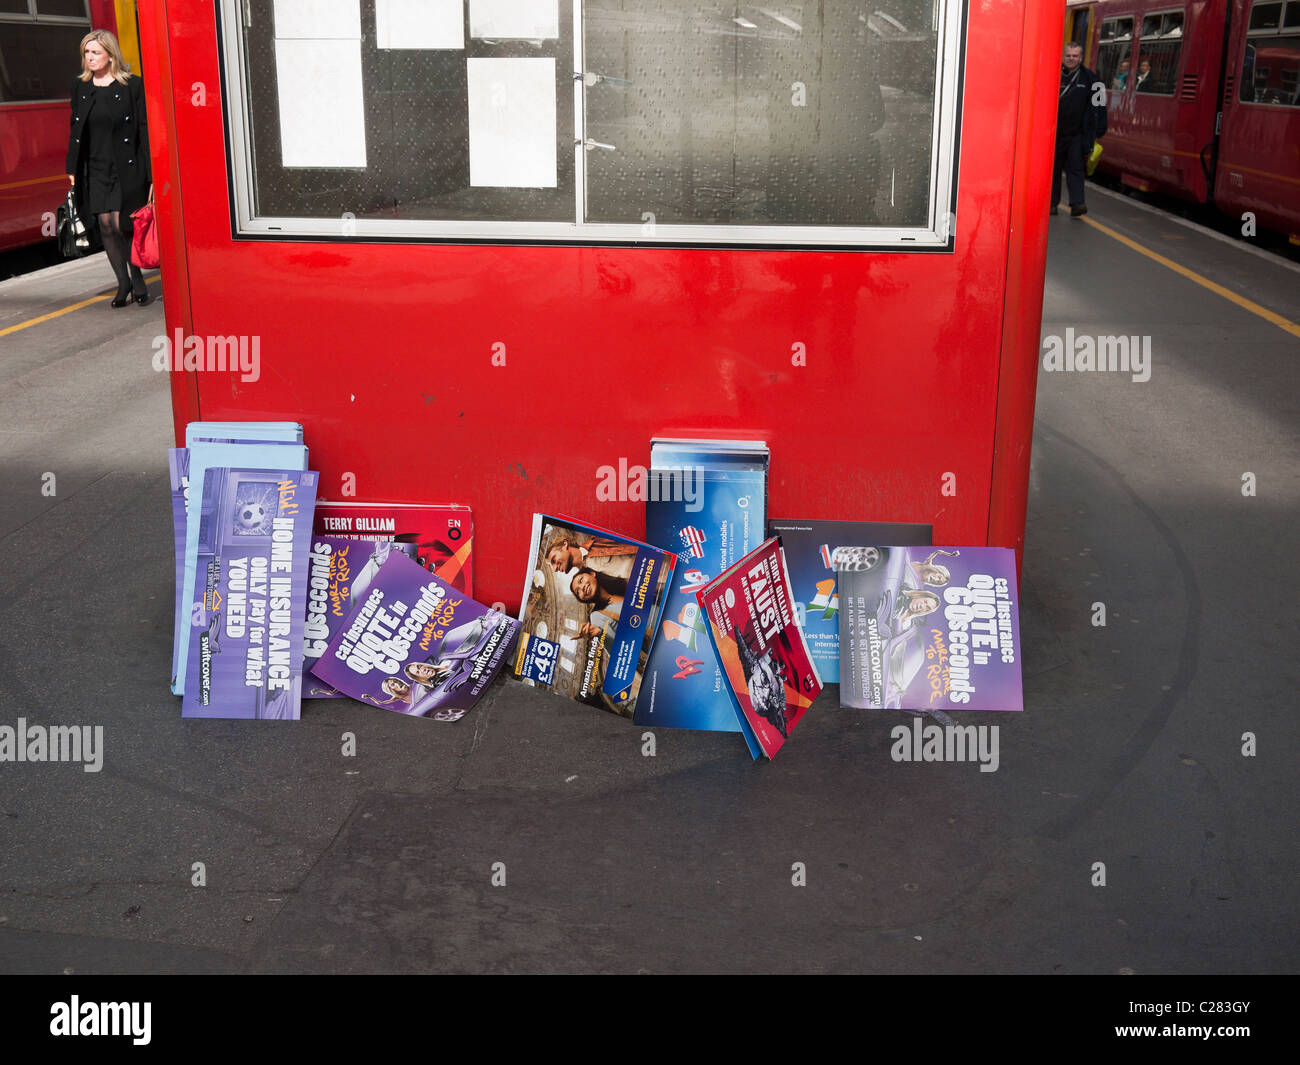 promotional material dumped on station at waterloo London  England - Stock Image